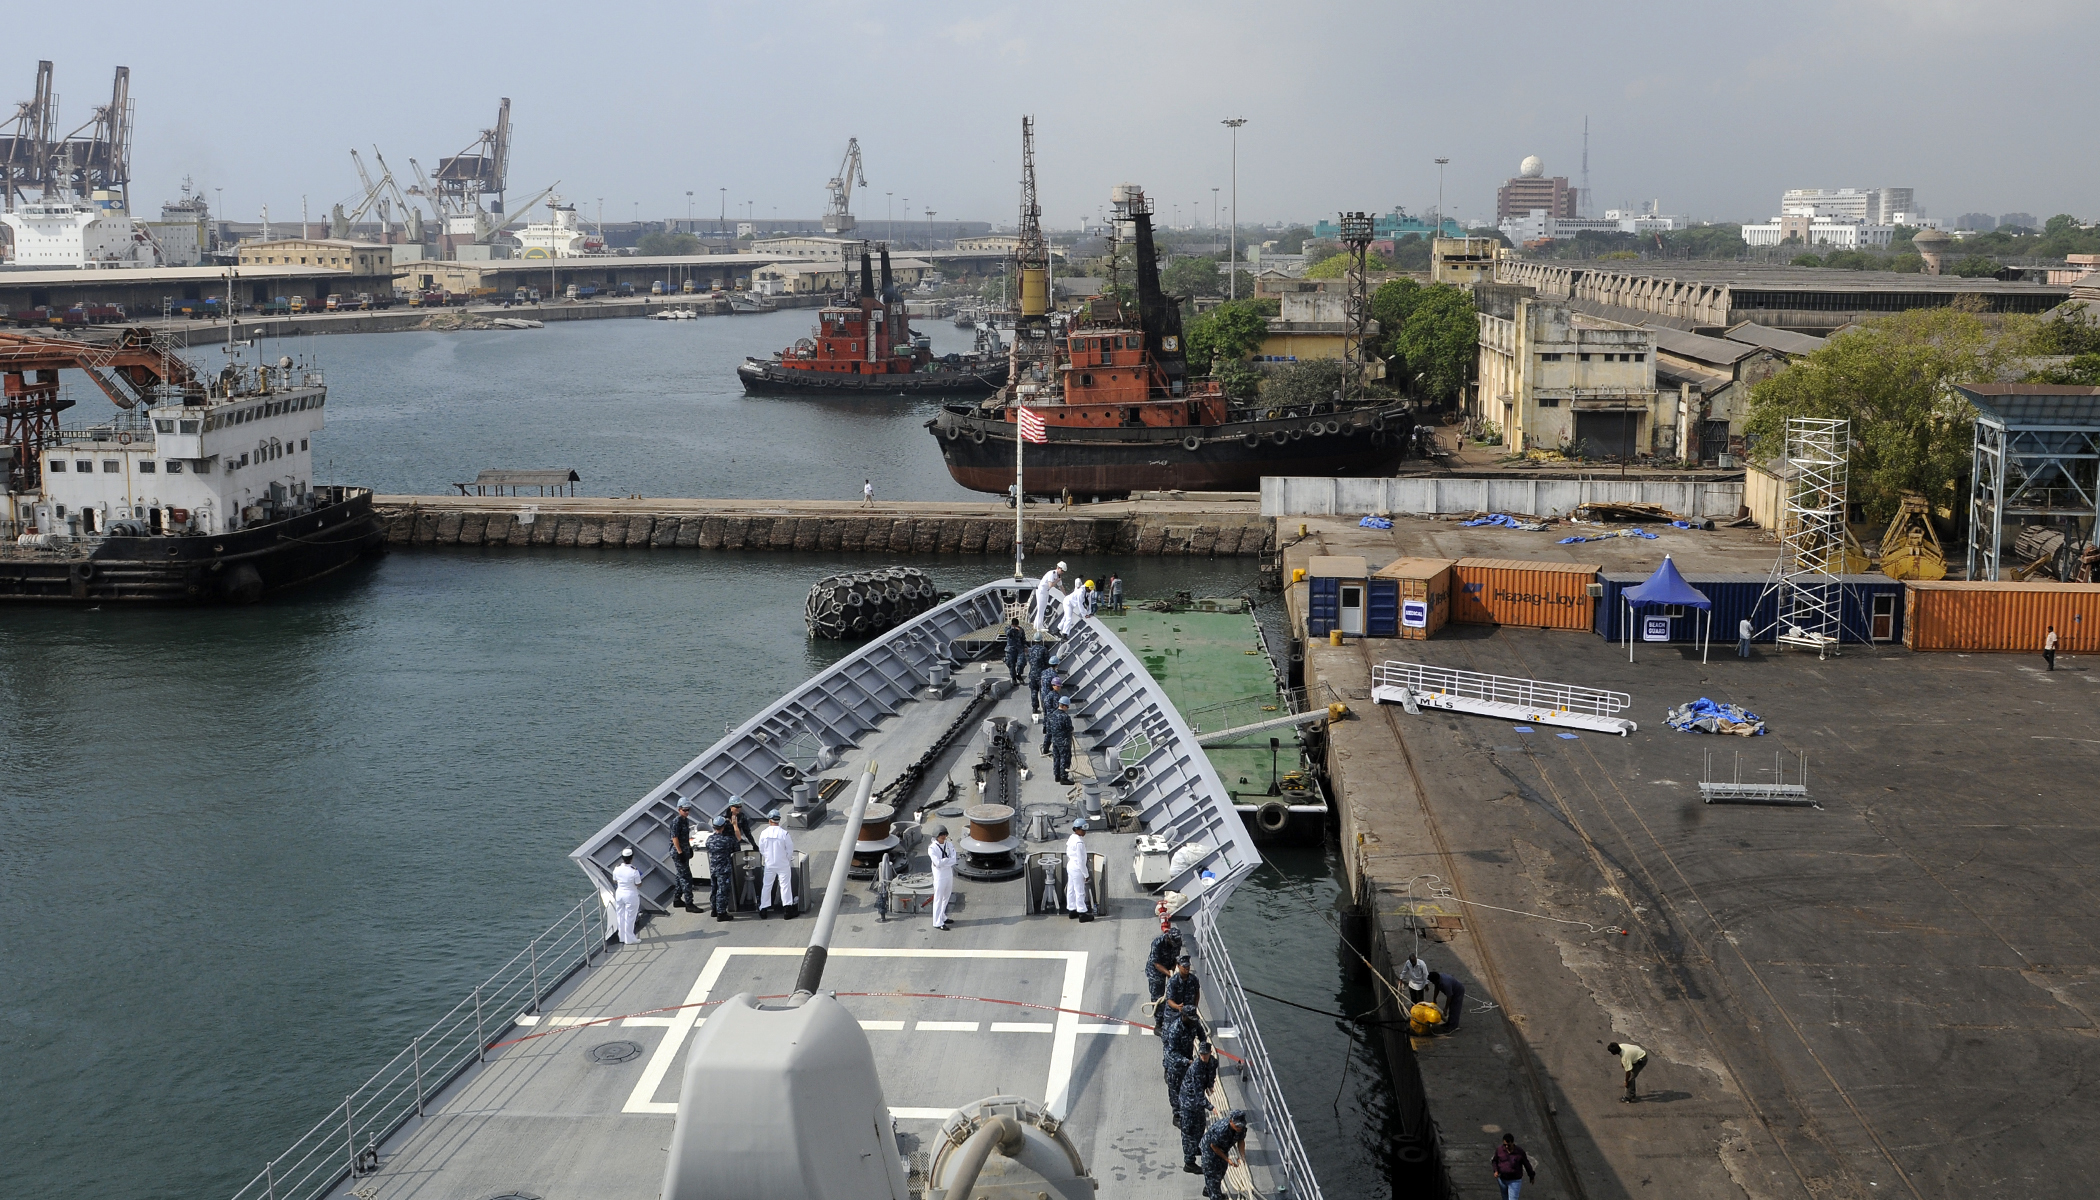 chennai port development Chennai port which is situated in the coromandel coast in south-east india has   indicates sustainable growth and development of business at chennai port.